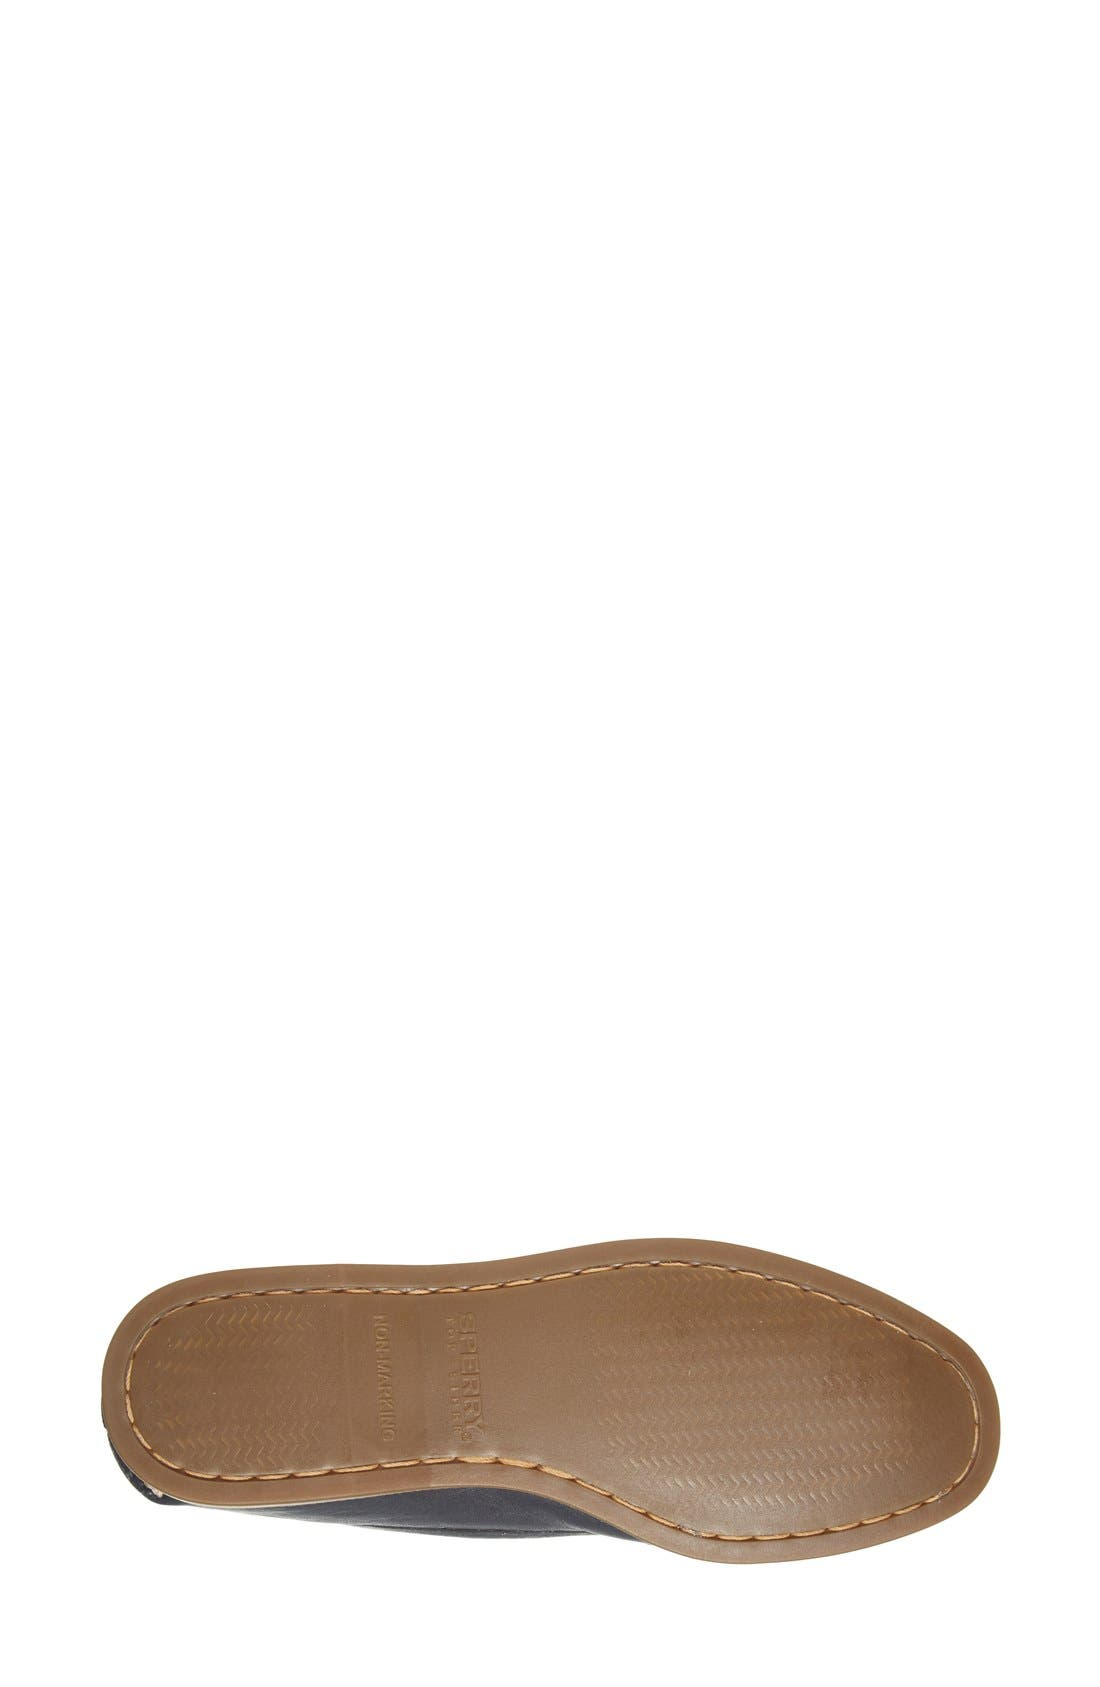 Alternate Image 4  - Sperry Top-Sider® 'Avery' Leather Loafer (Women)